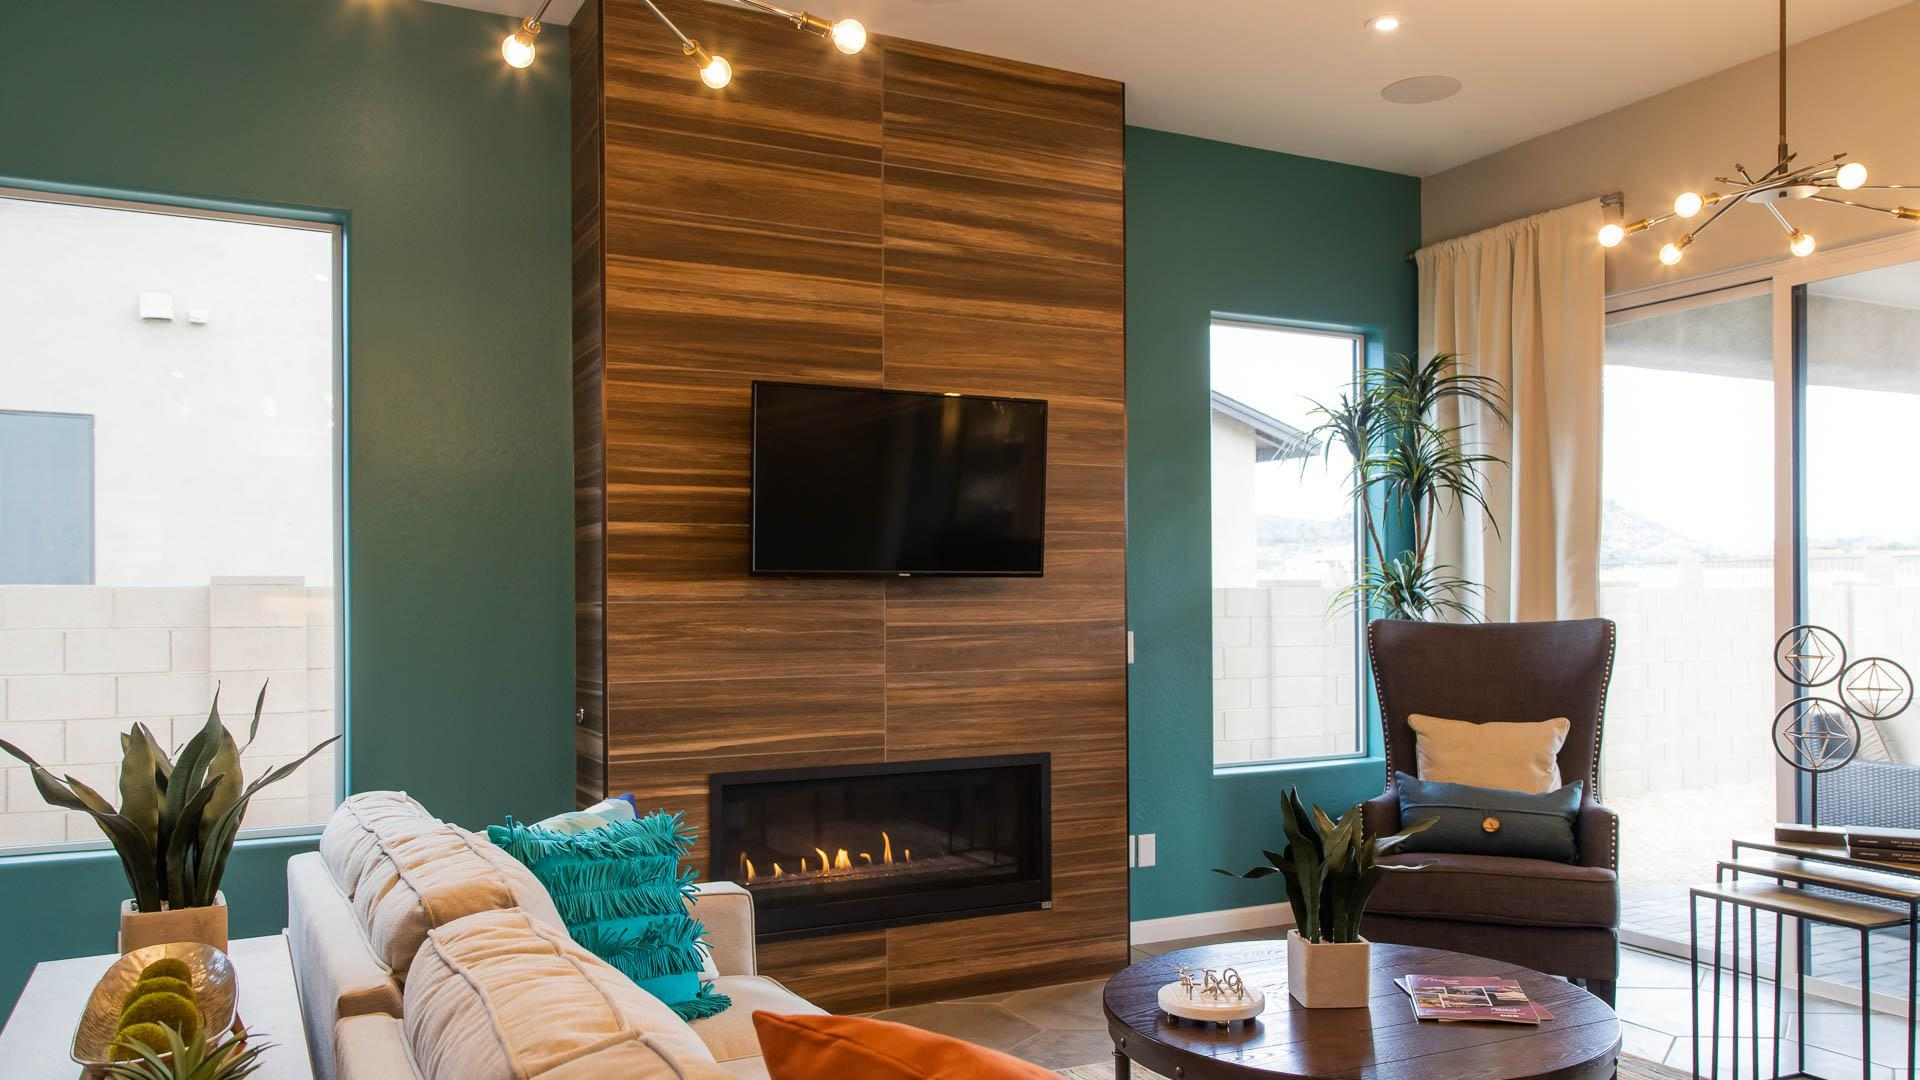 Living Area featured in the Corona at Foothills By Mandalay Homes in Prescott, AZ